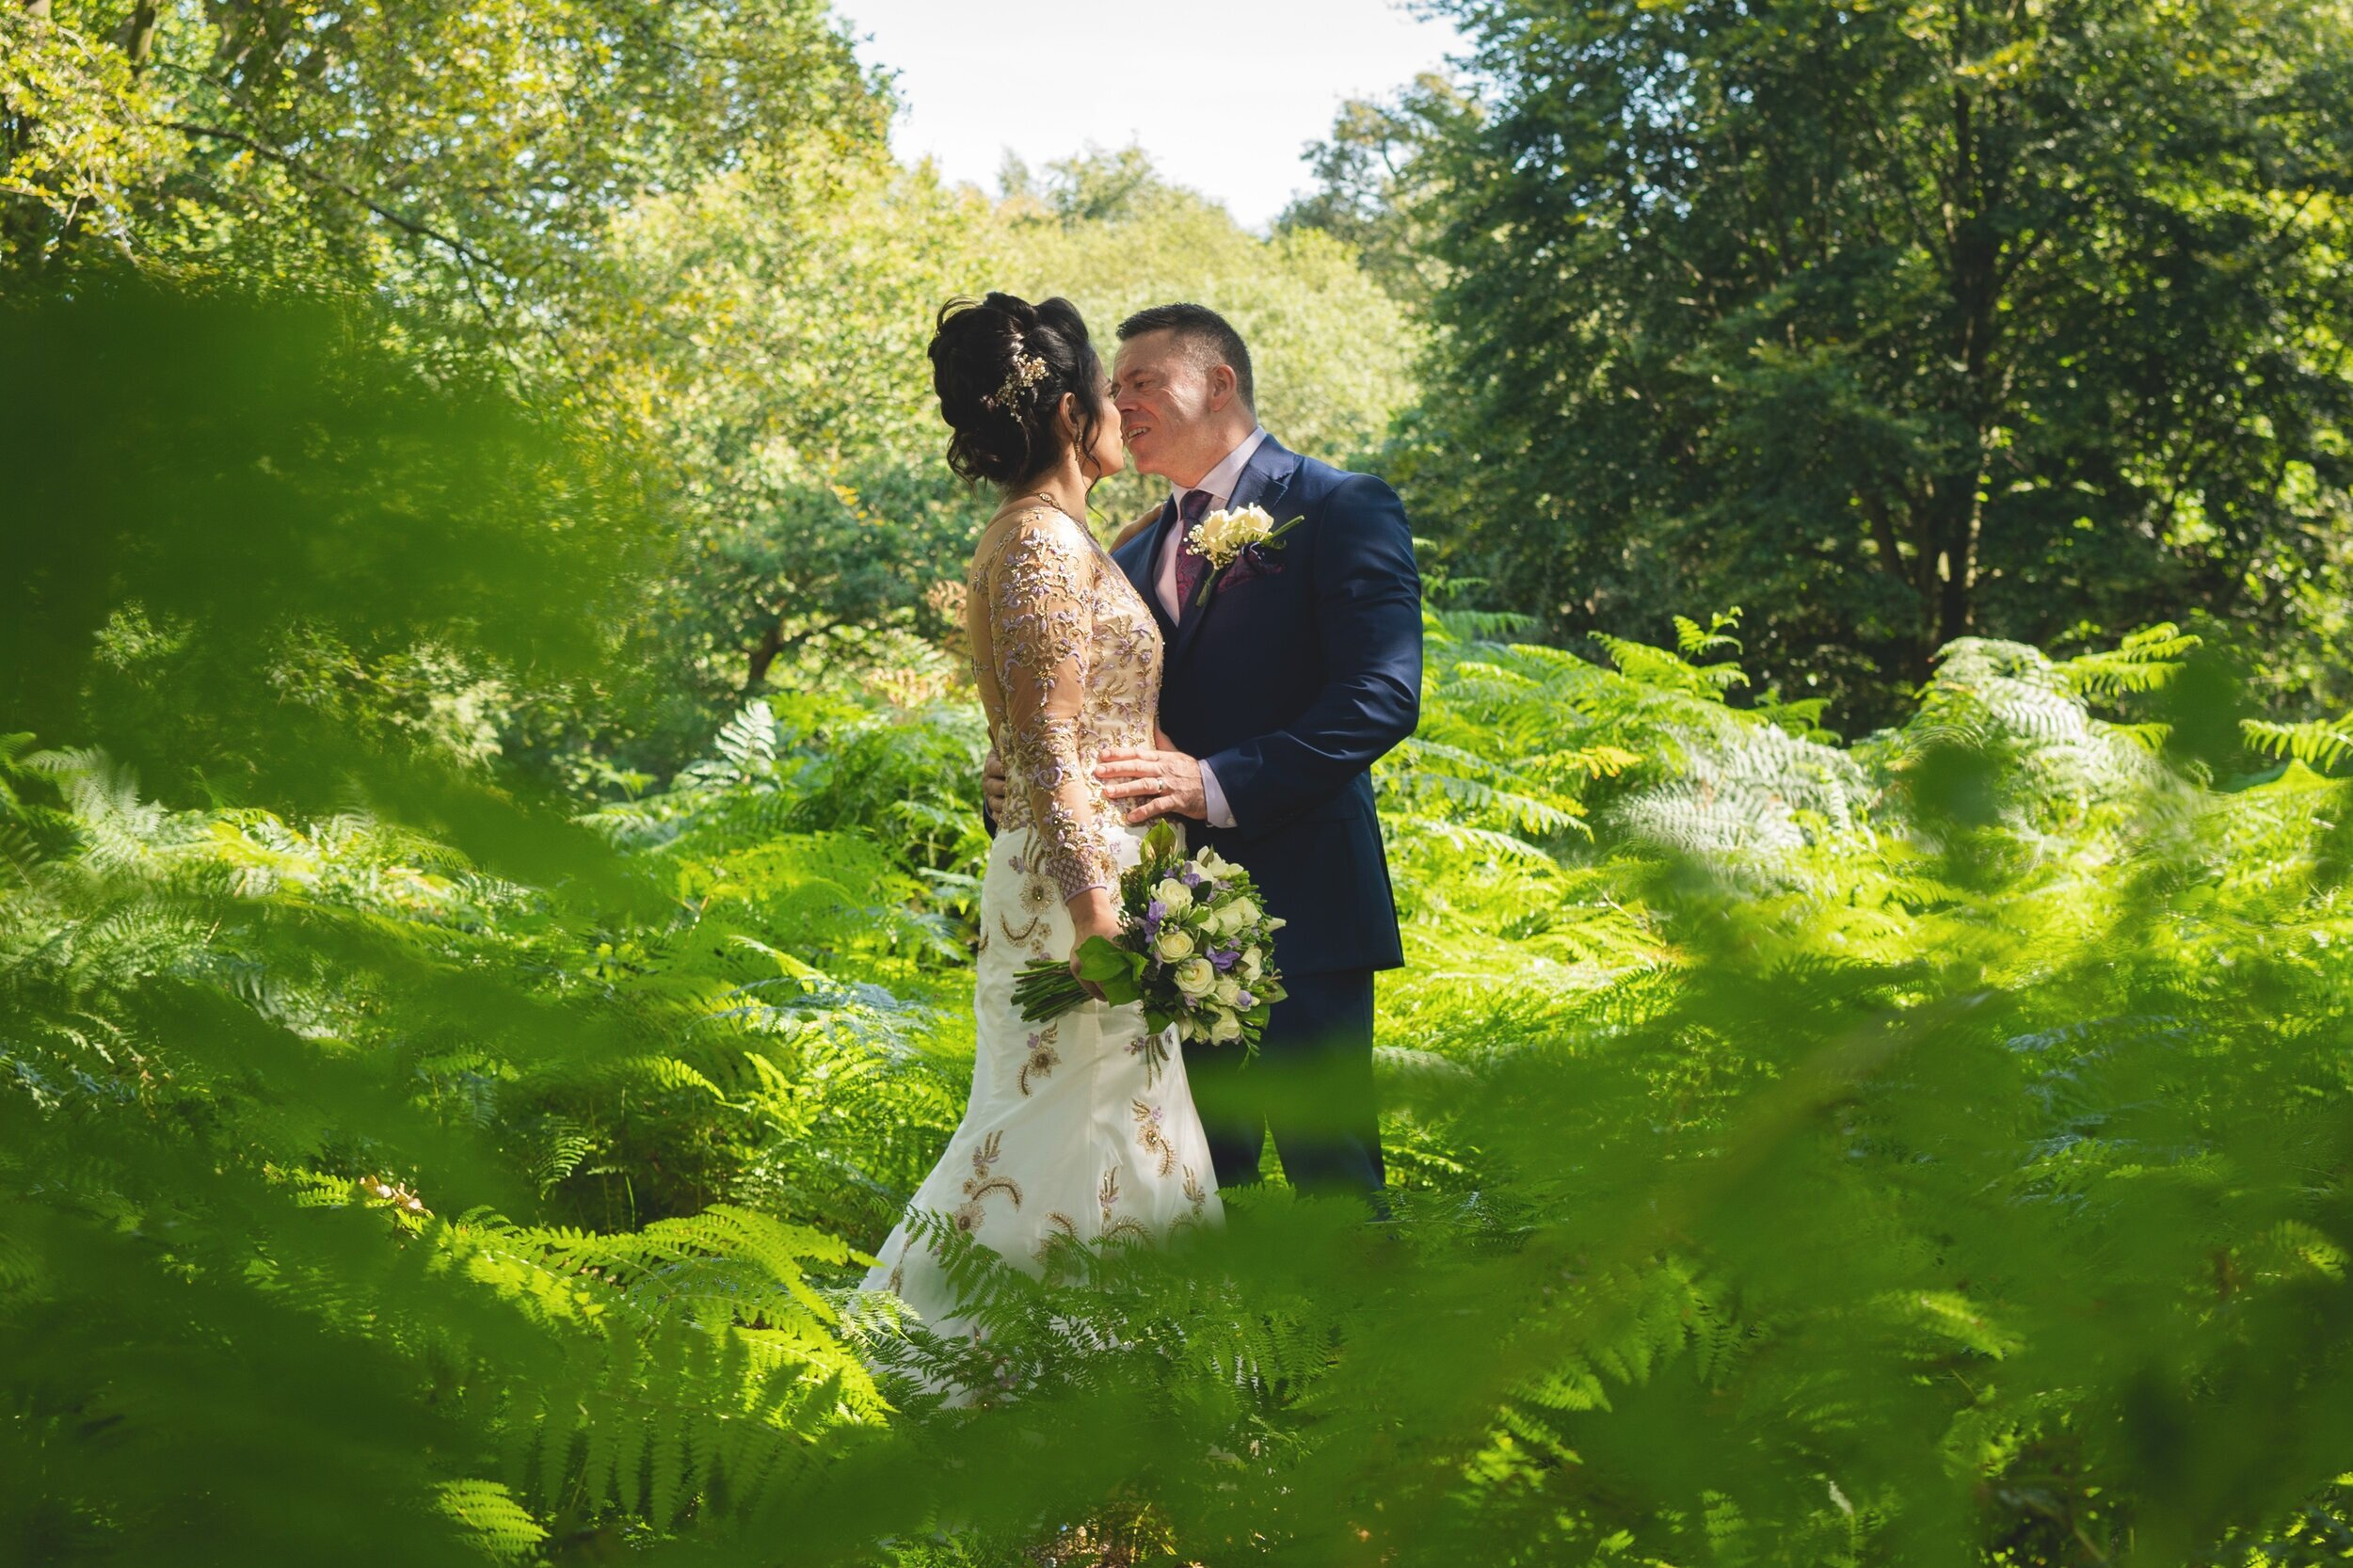 Bejal & Nigel - My first time for a forest wedding. A mixture of dance and culture, laughter and colour form start to finish. The Kings Oak hotel in Epping forest was a perfect backdrop.